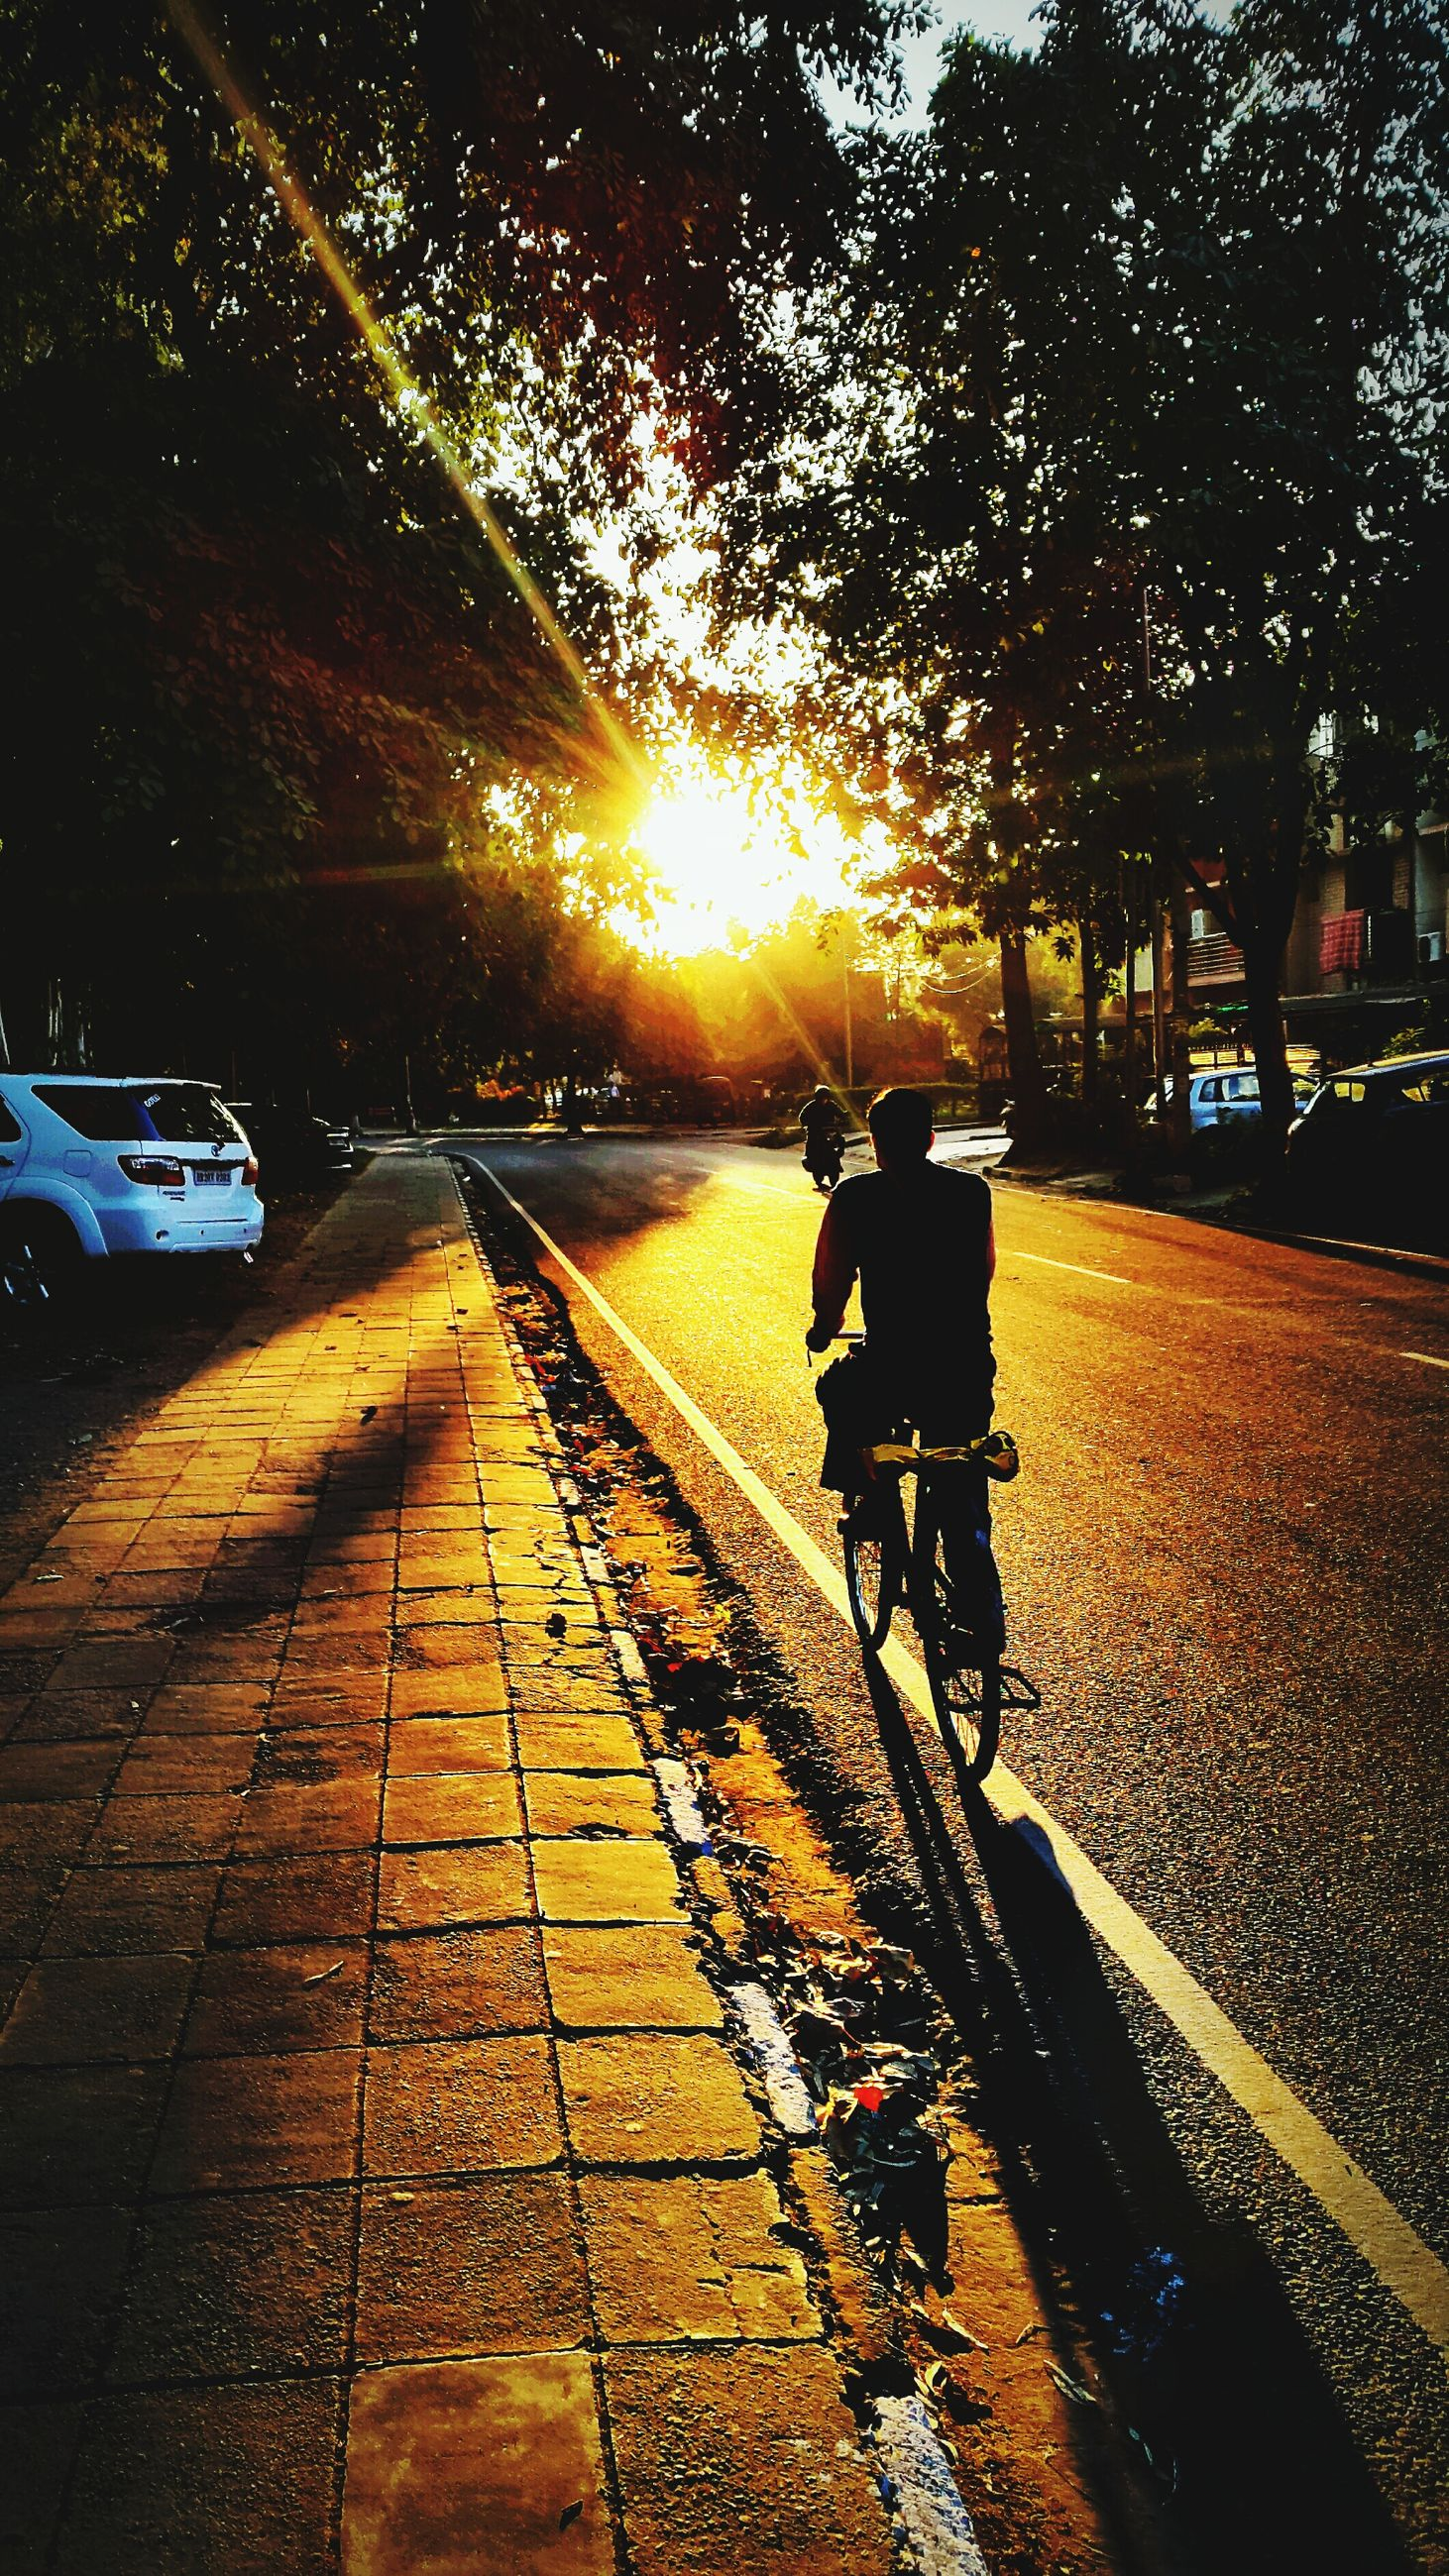 transportation, land vehicle, mode of transport, car, sunset, street, road, the way forward, sunlight, sun, tree, silhouette, sidewalk, outdoors, on the move, travel, lens flare, street light, city, bicycle